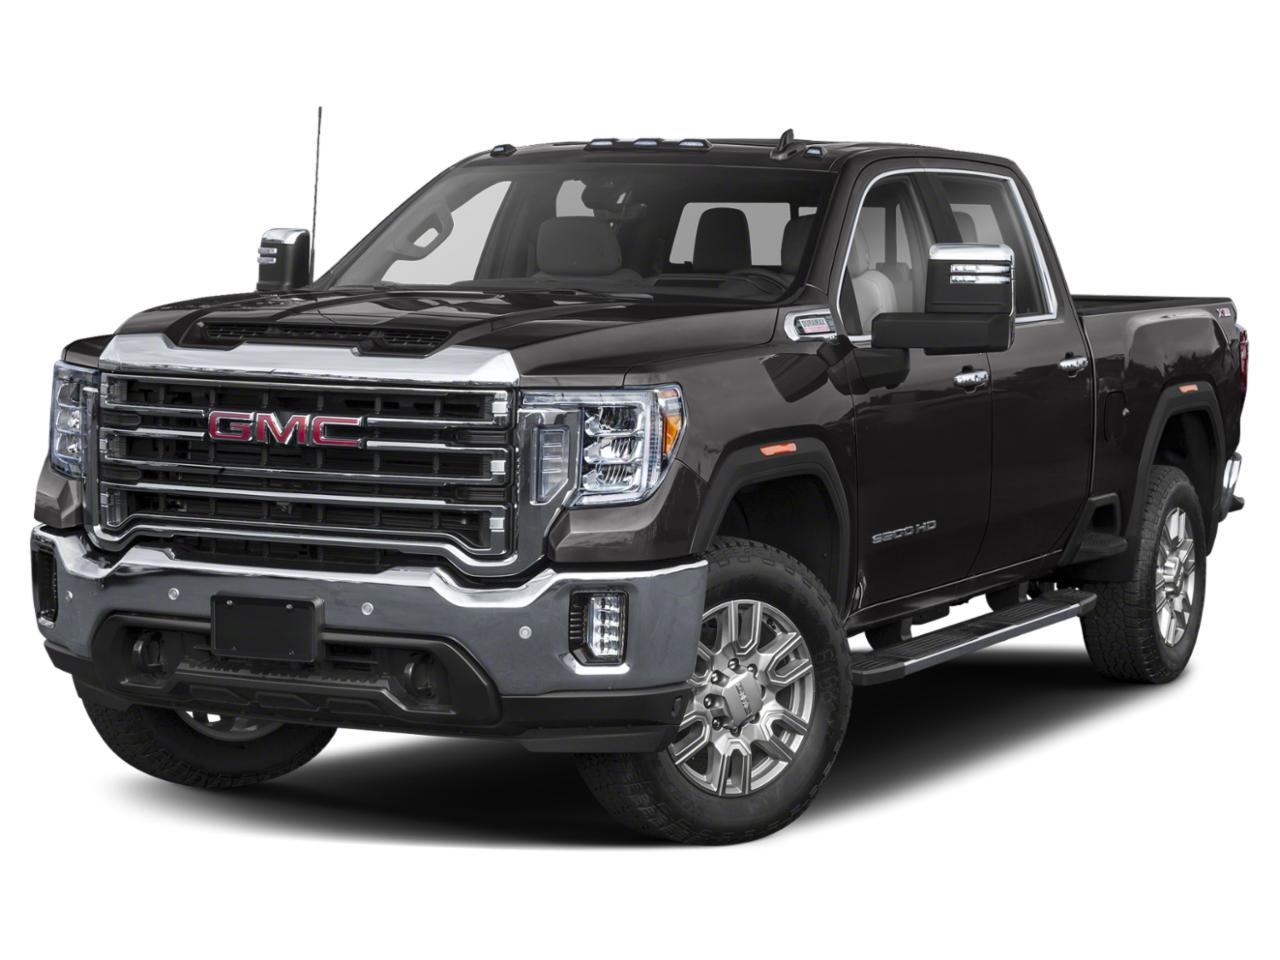 2020 GMC Sierra 3500HD Vehicle Photo in Grand Rapids, MI 49512